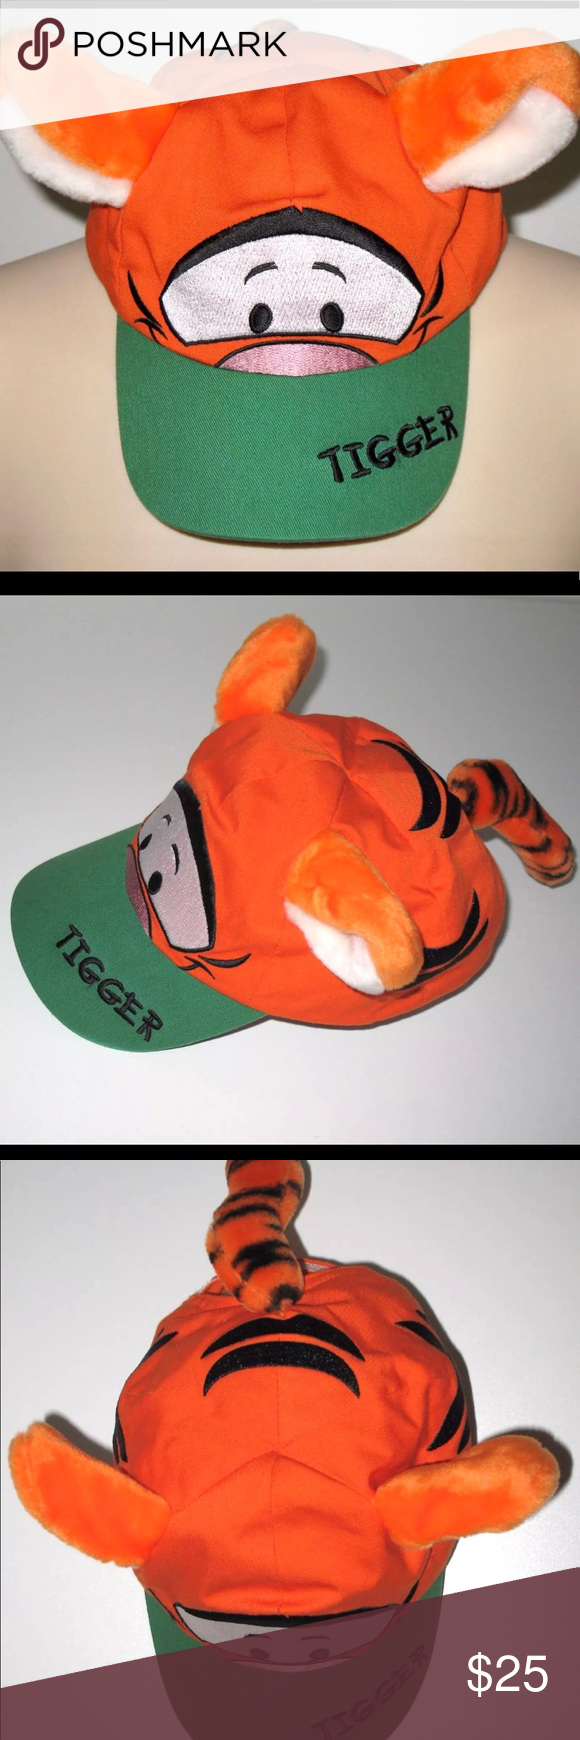 b47e158ef10 Disney toddler Tigger plush hat Disney tigger plush toddler hat. Lightly  used. Clean